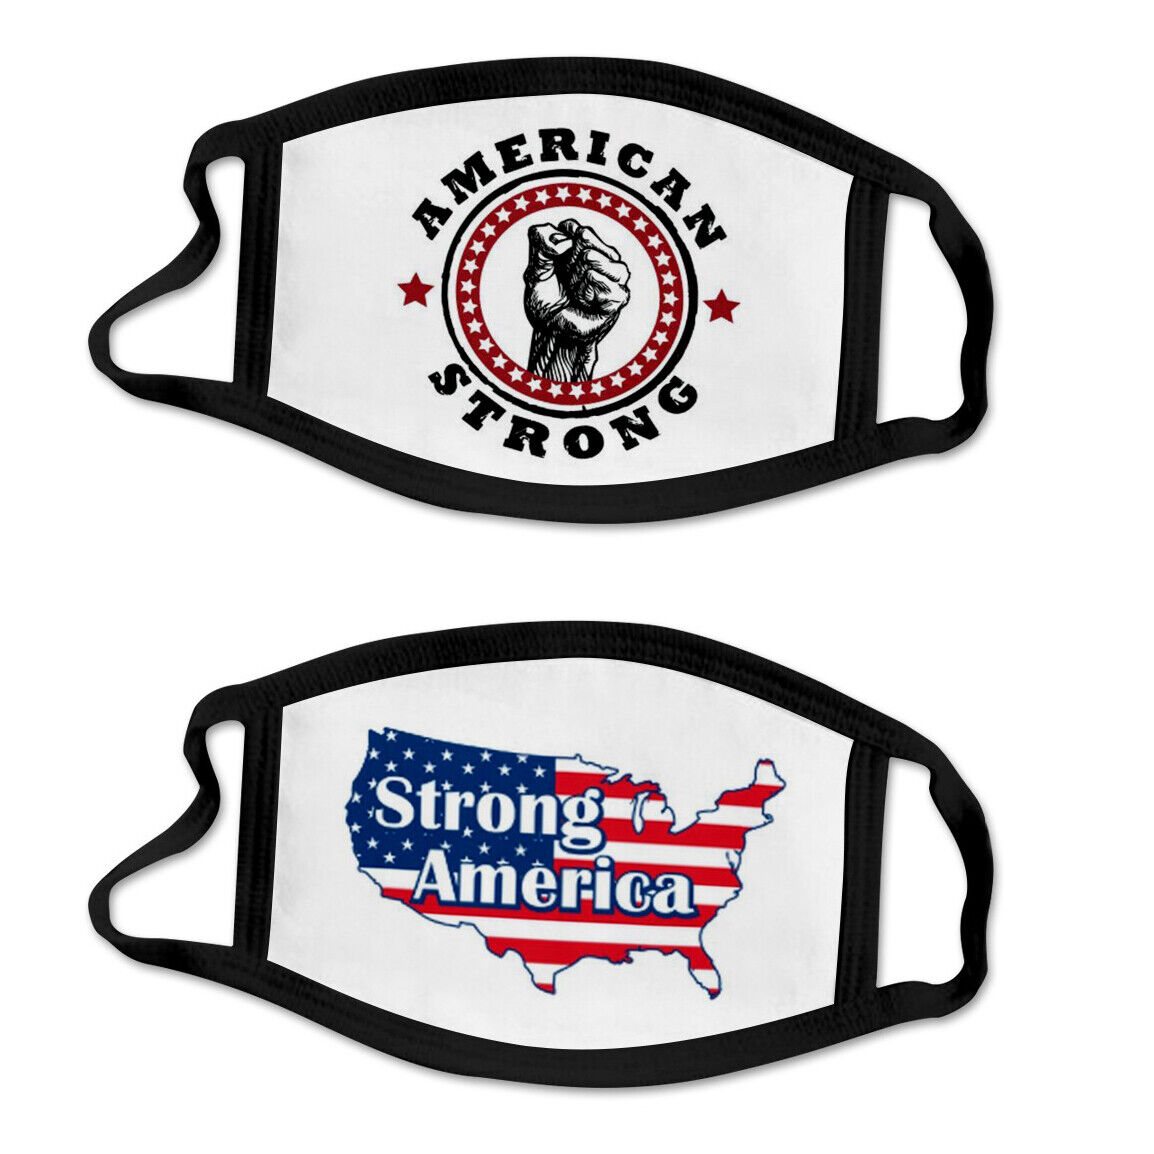 2 pcs American Strong America Fashion Cotton Half Face Cloth Masks Mouth Cover Accessories